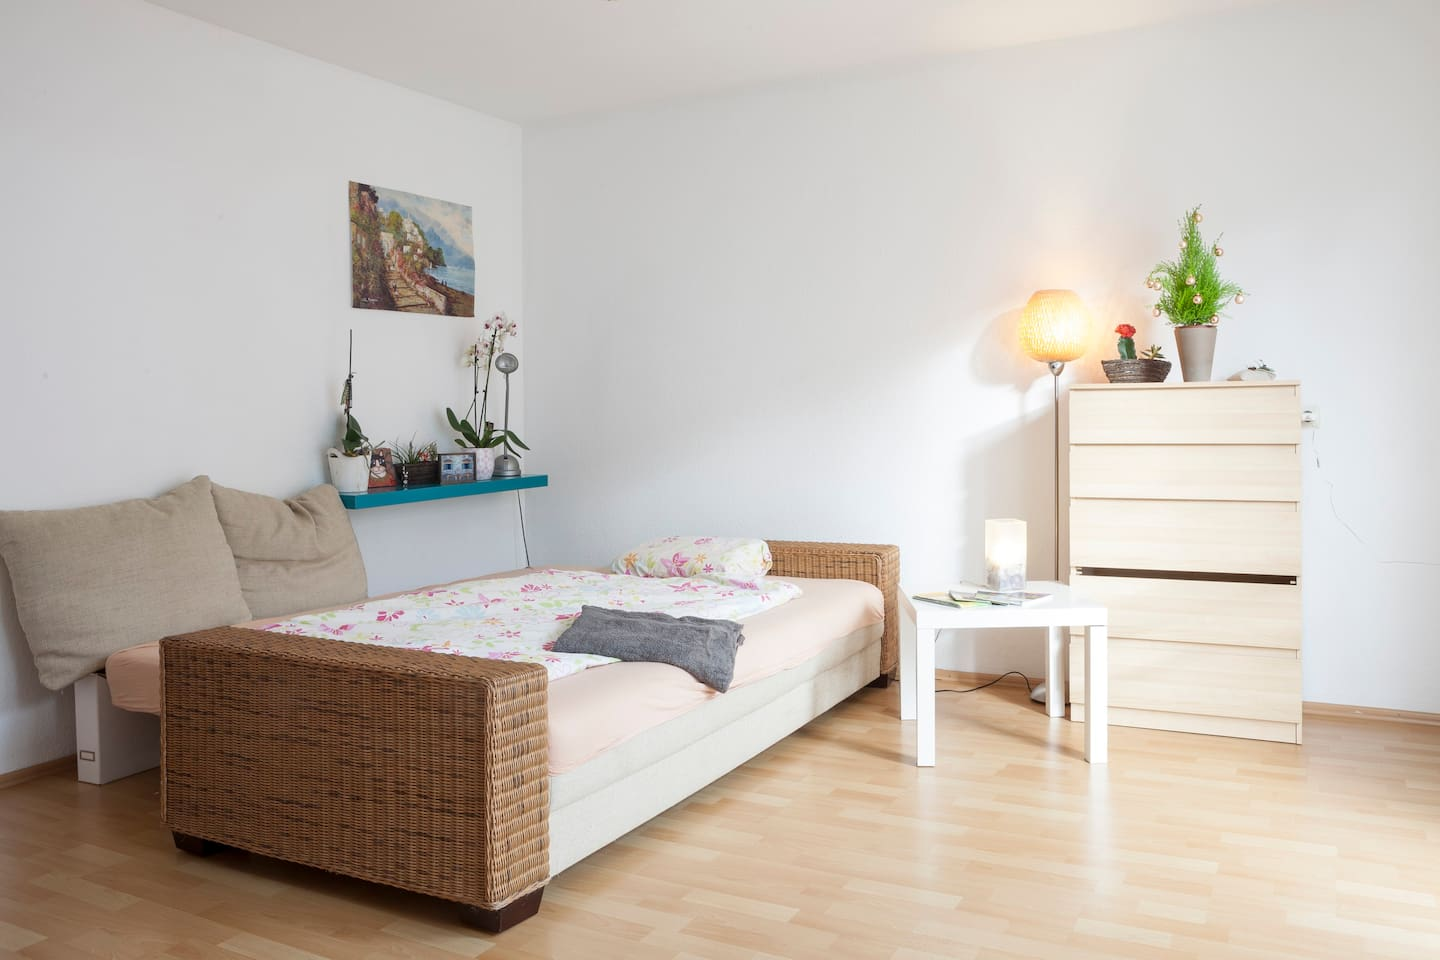 bedfunction for two persons 160*200cm